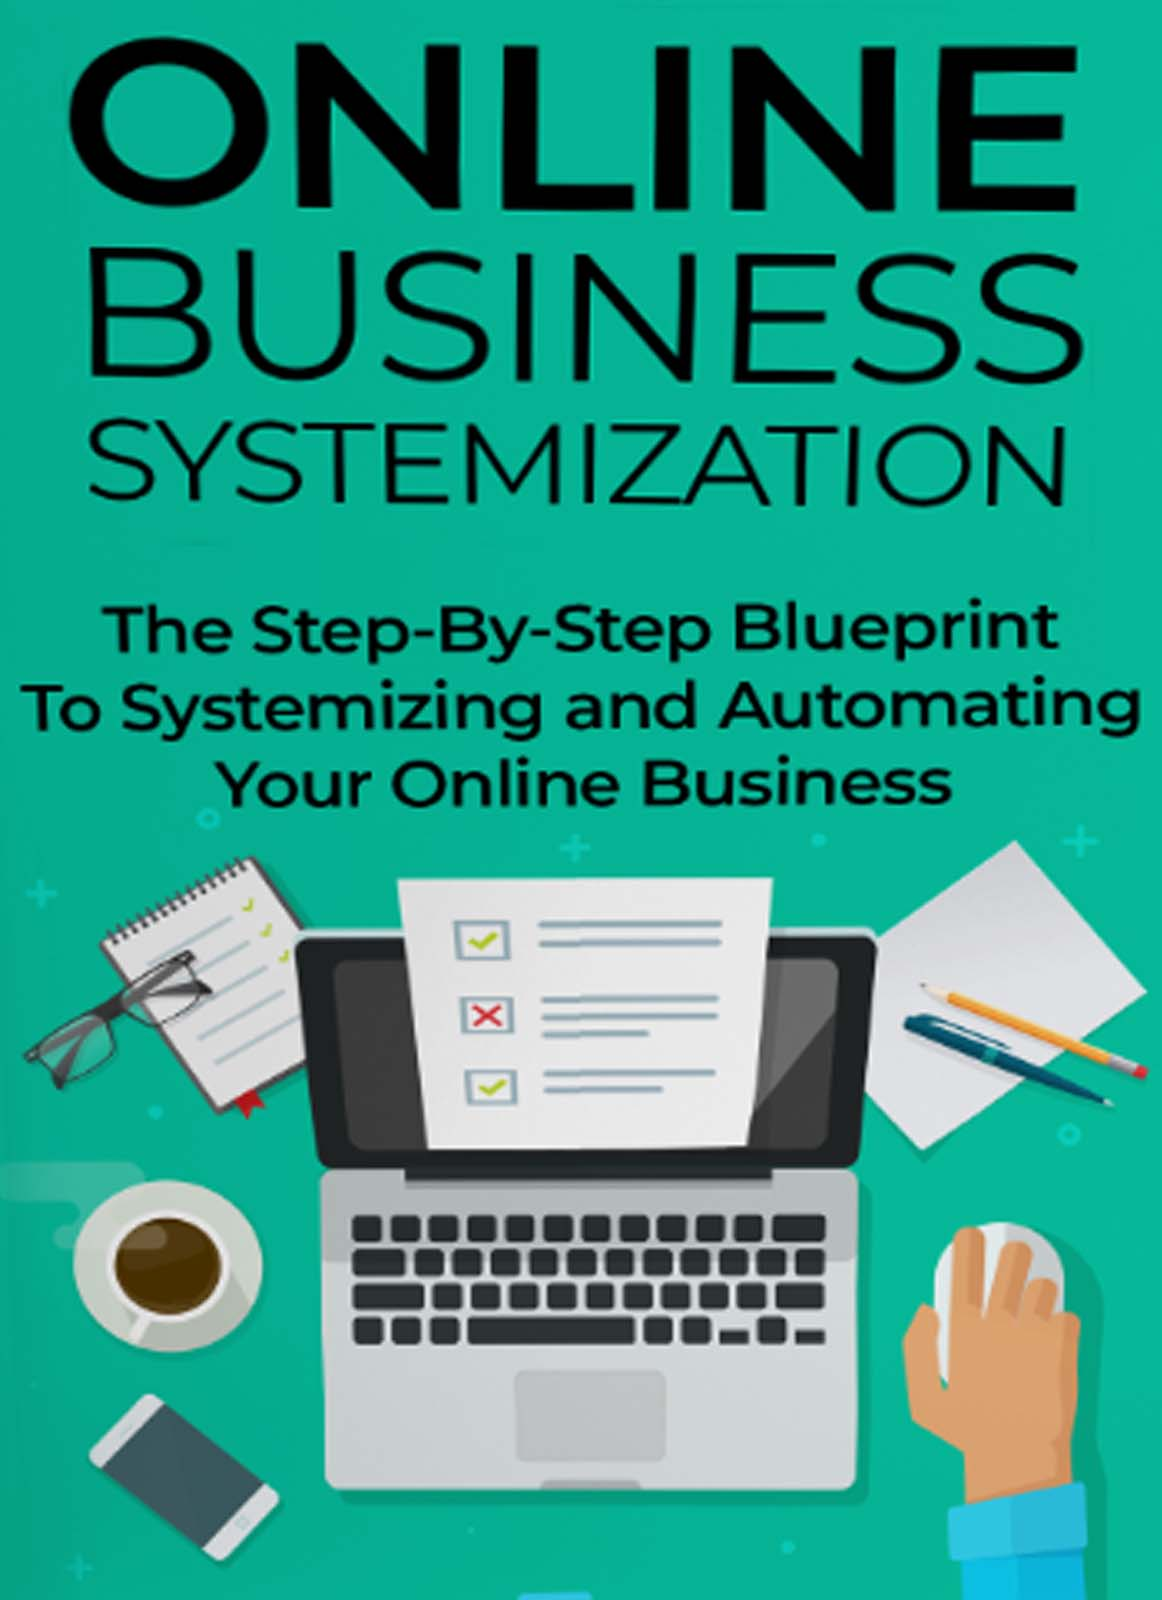 online-business-systemization-full